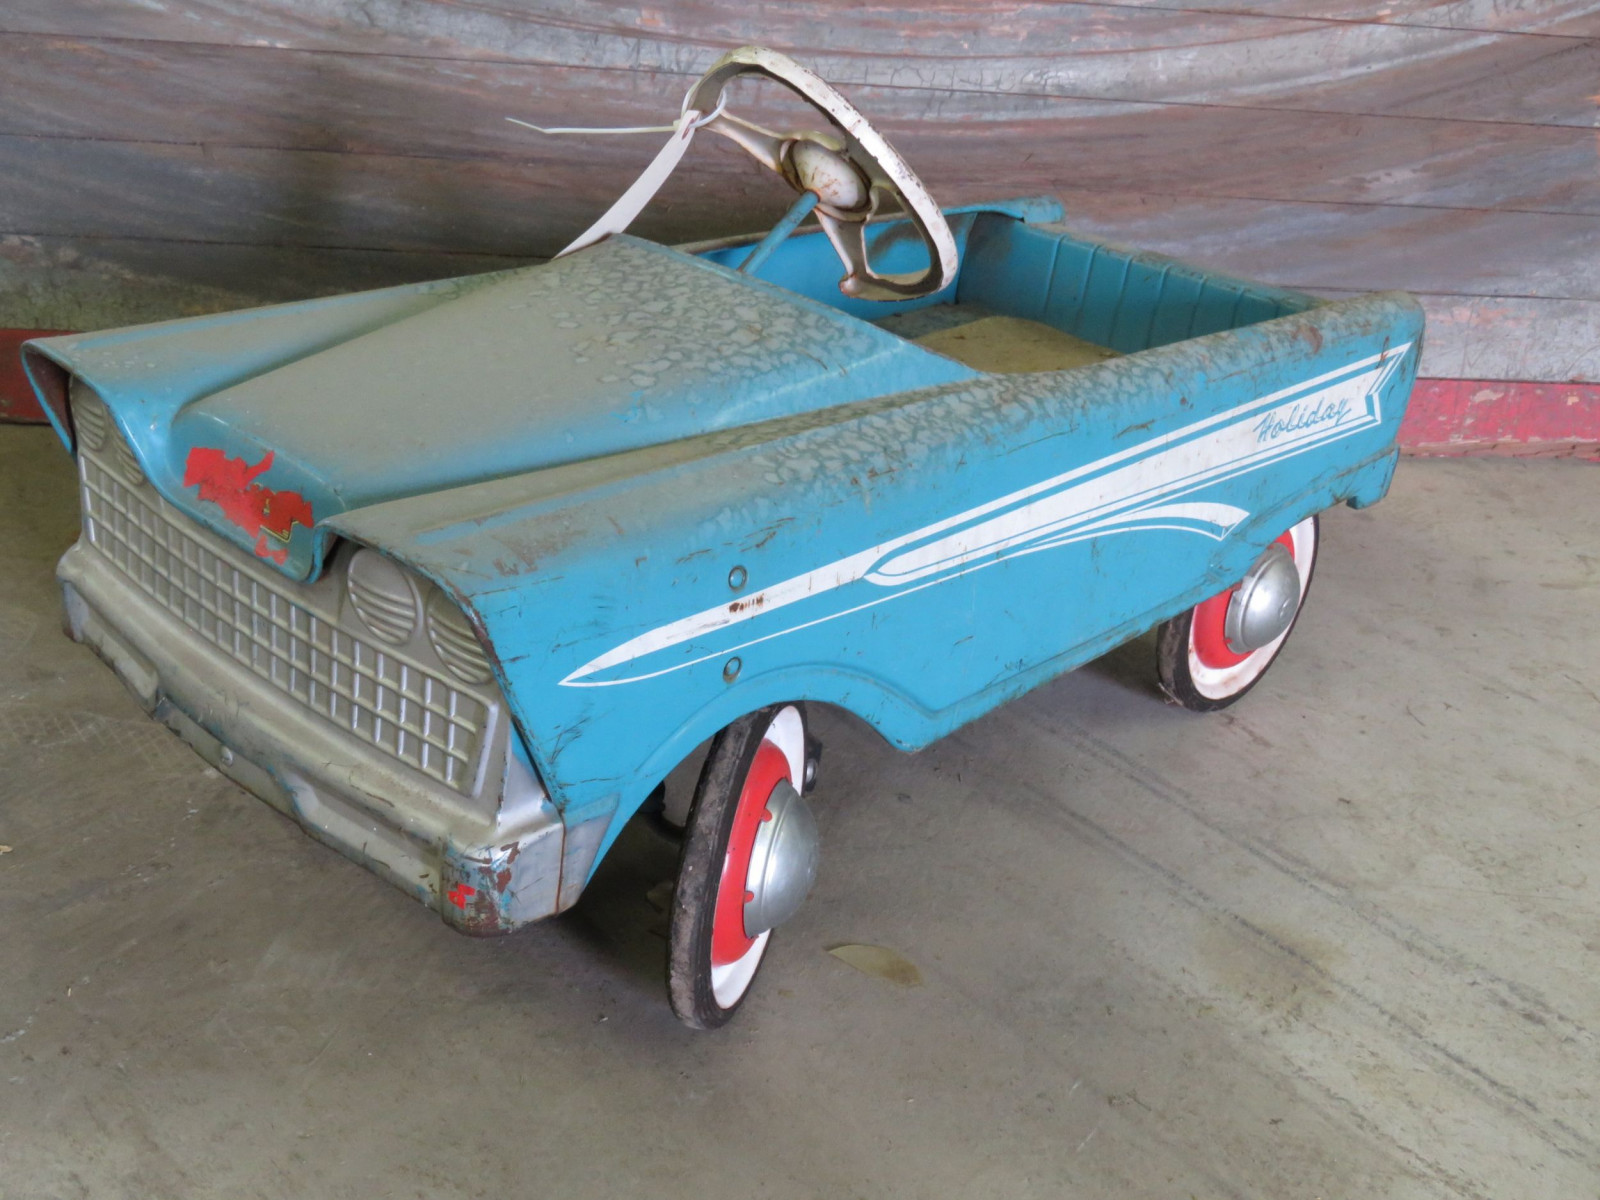 Vintage Murray Holiday Pedal Car - Image 1